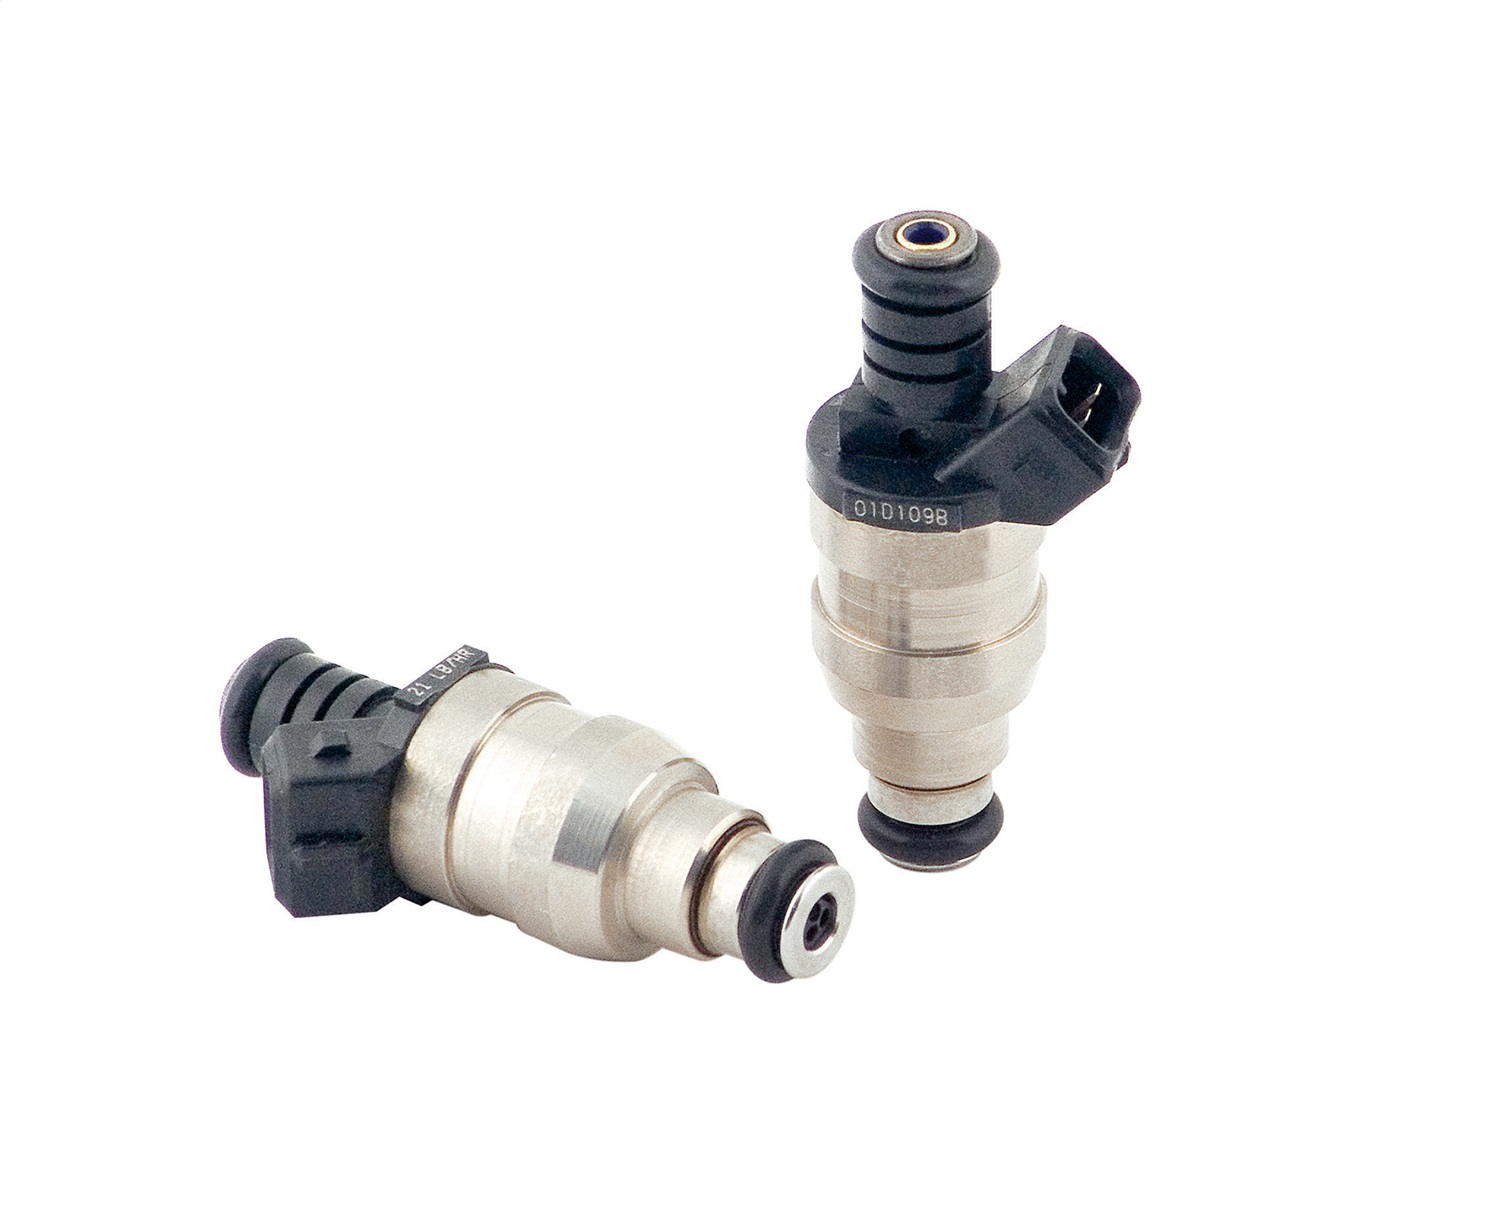 ACCEL 150119 PERF FUEL INJECTOR 19lb each